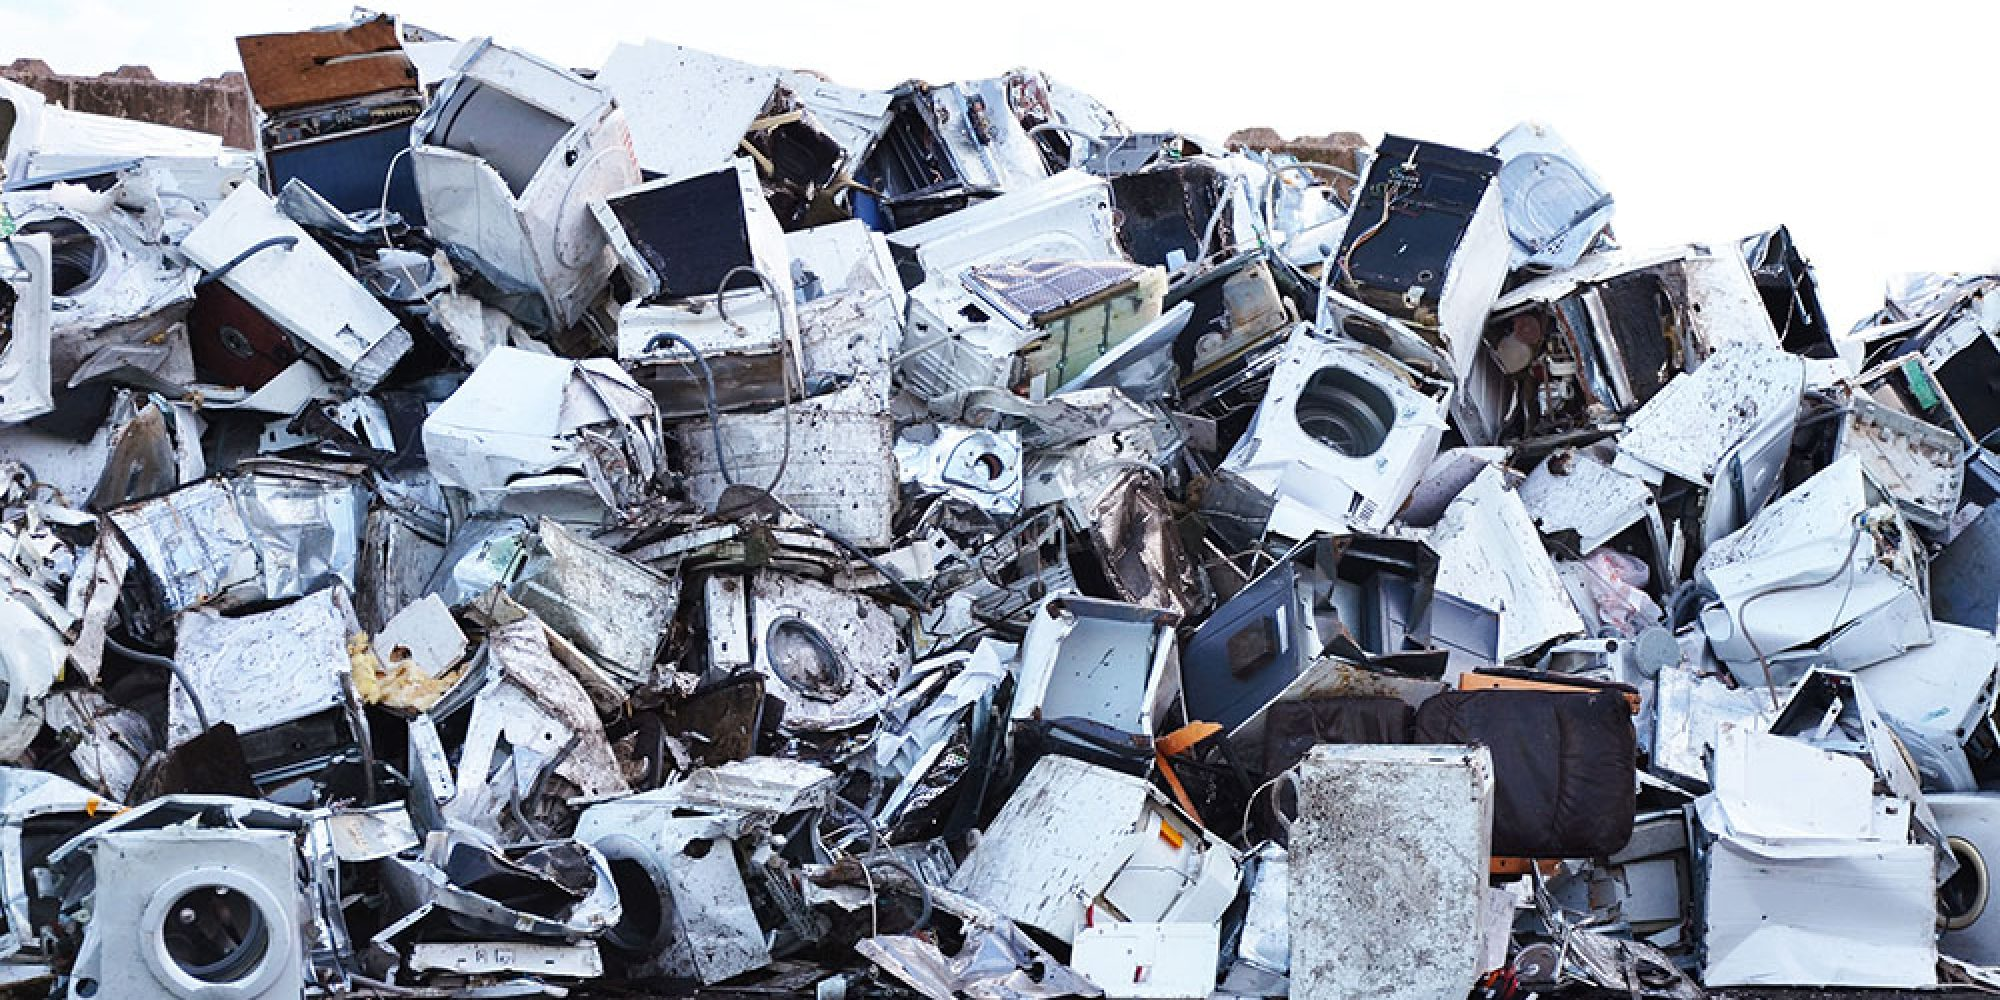 StudioPlastique_CommonSands_EWaste